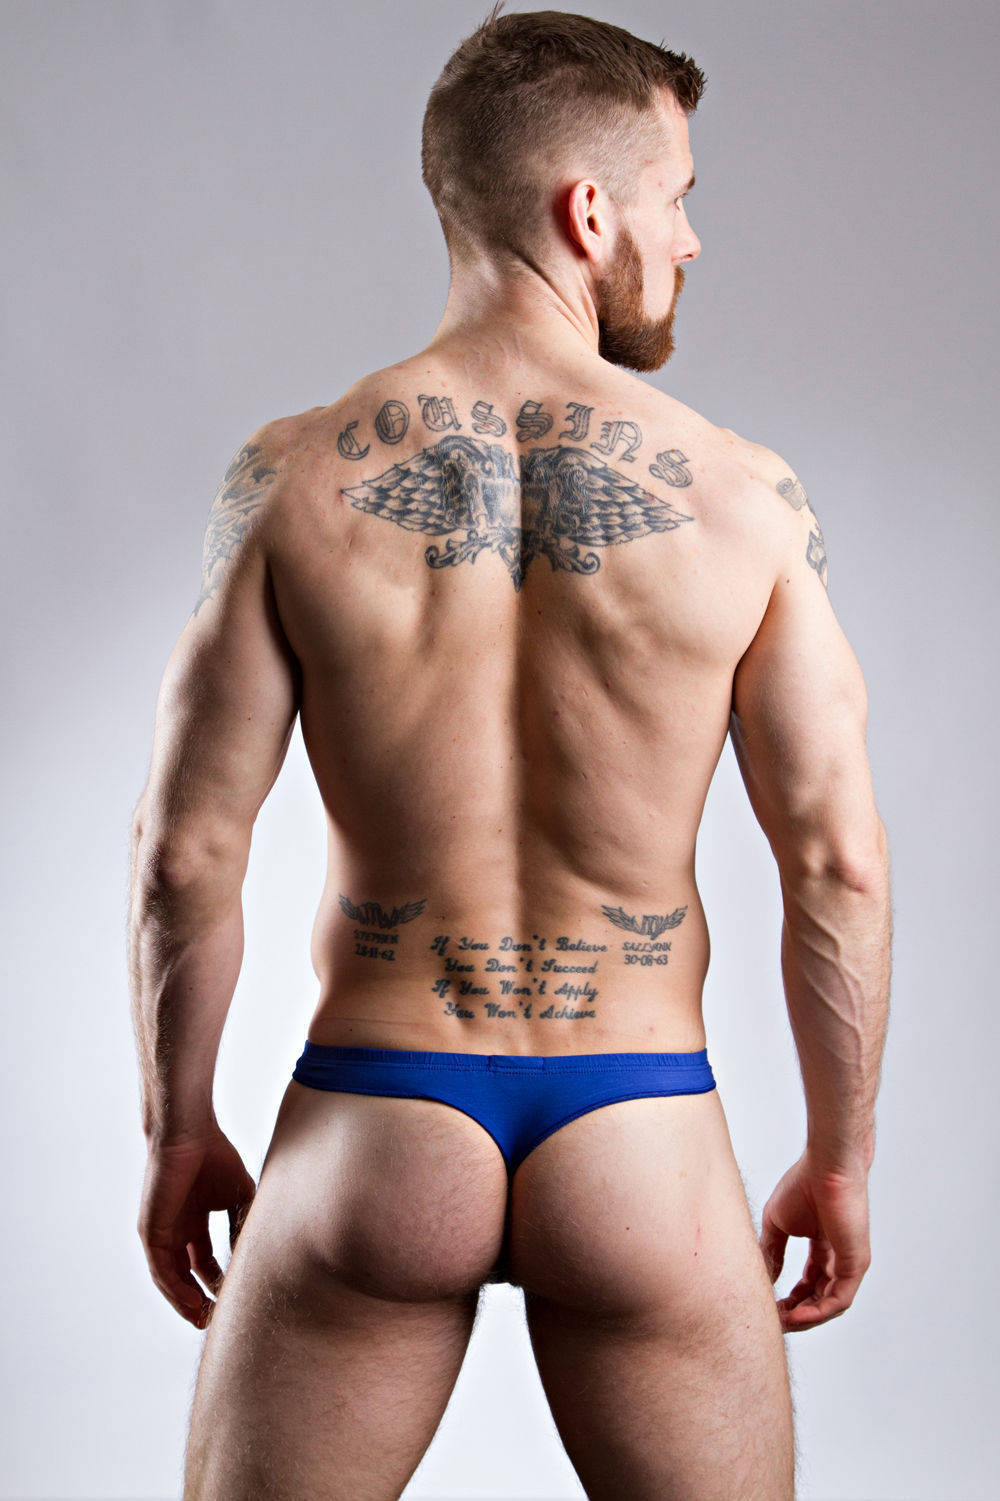 What's Hot in the UK - Rear View Edition